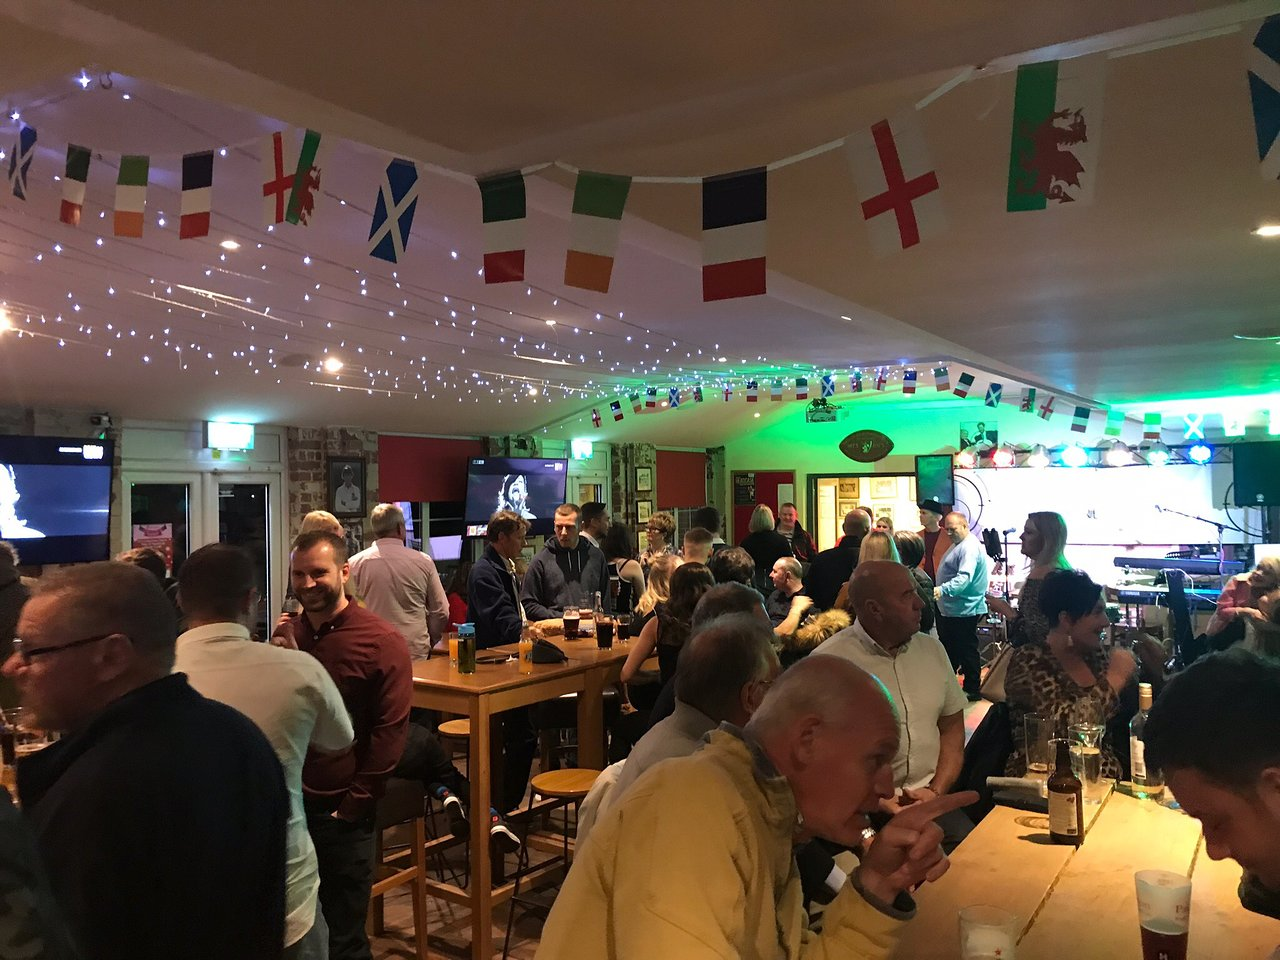 Paignton Rfc 2021 All You Need To Know Before You Go With Photos Tripadvisor